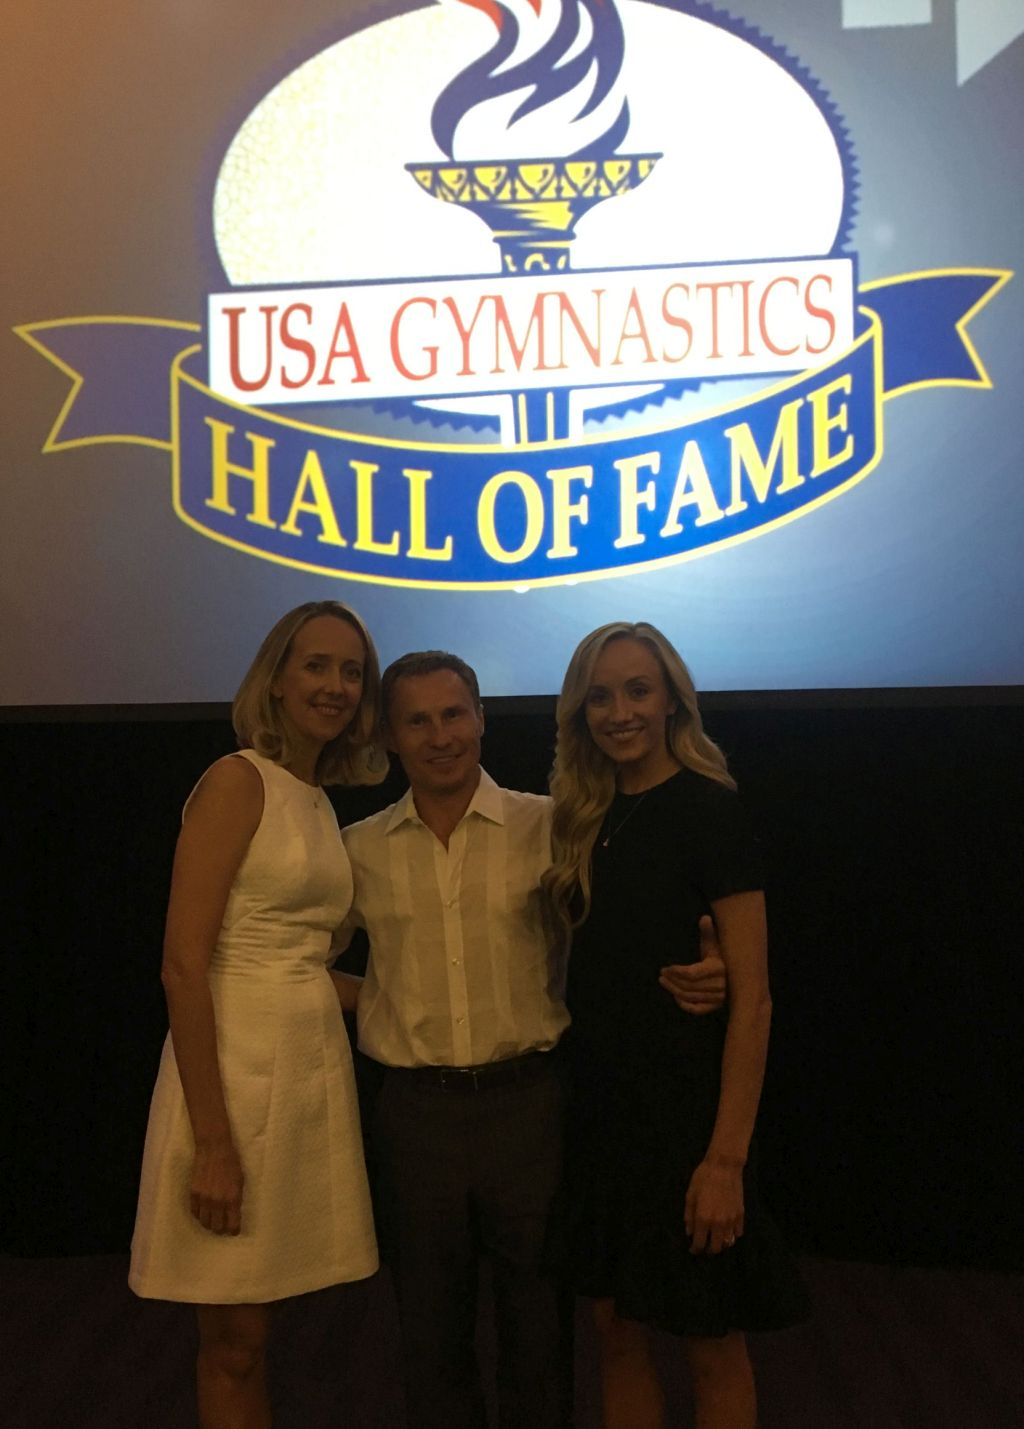 Congratulations Valeri Liukin on your induction into the USA Gymnastics Hall of Fame!! Class of 2016. Texas is very proud and honored.